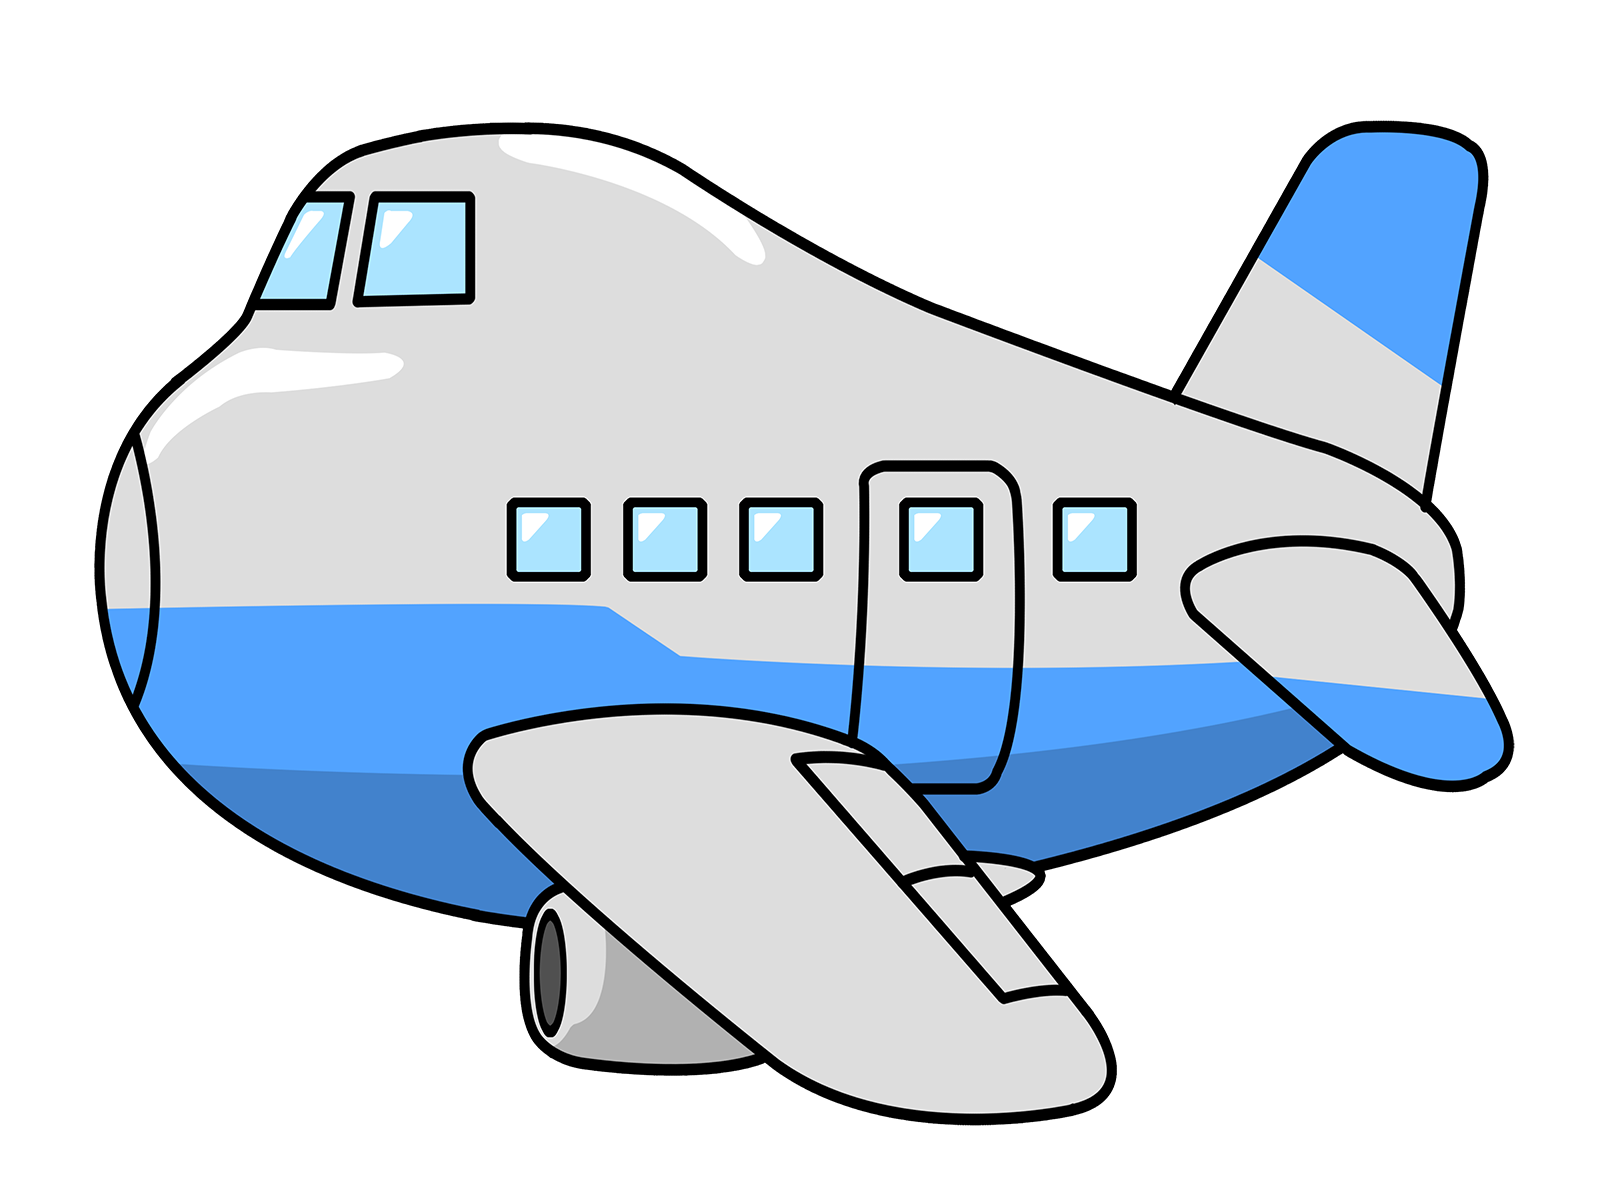 Clipart Airplane-clipart airplane-8